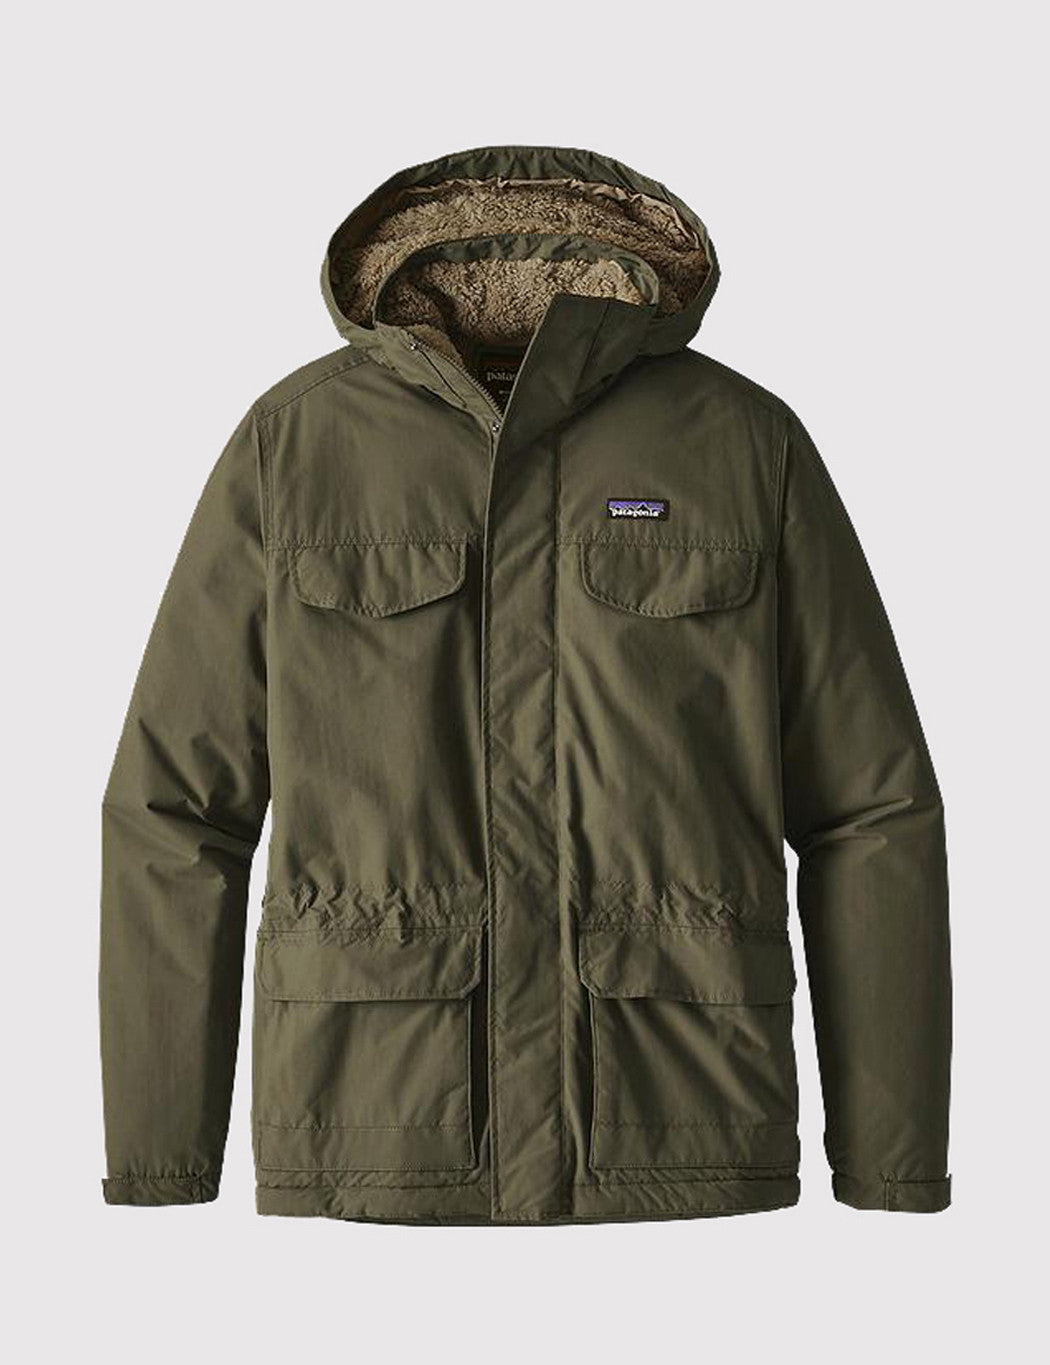 Patagonia Isthmus Parka - Industrial Green